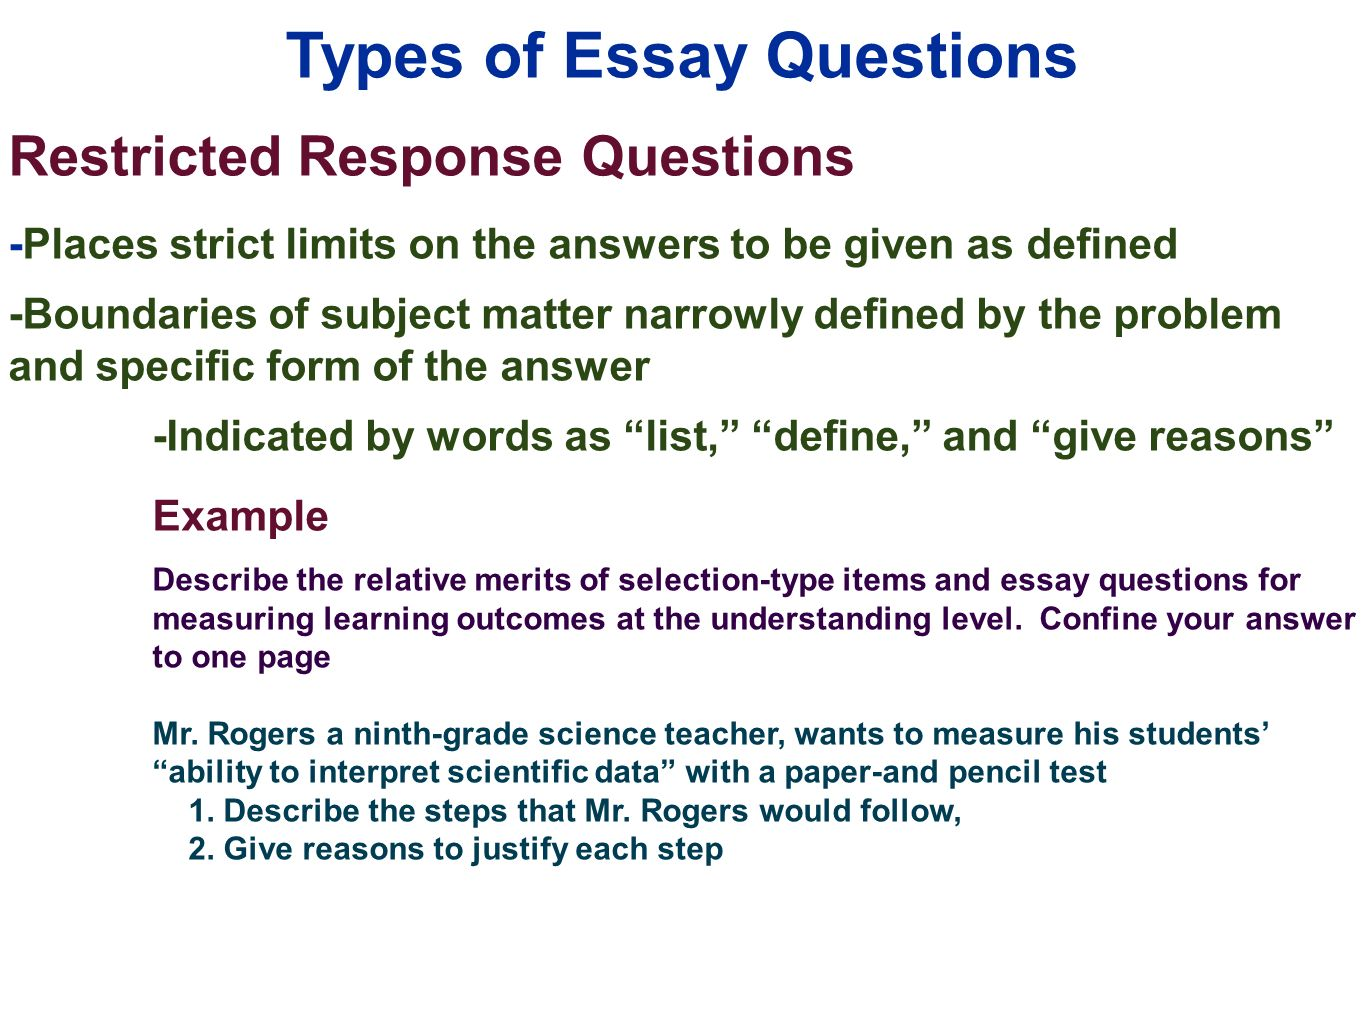 restricted response essay question Overheads for unit 7--chapter 10 (essay questions) oh 1 essay questions: forms they represent a continuum in how much freedom of response.